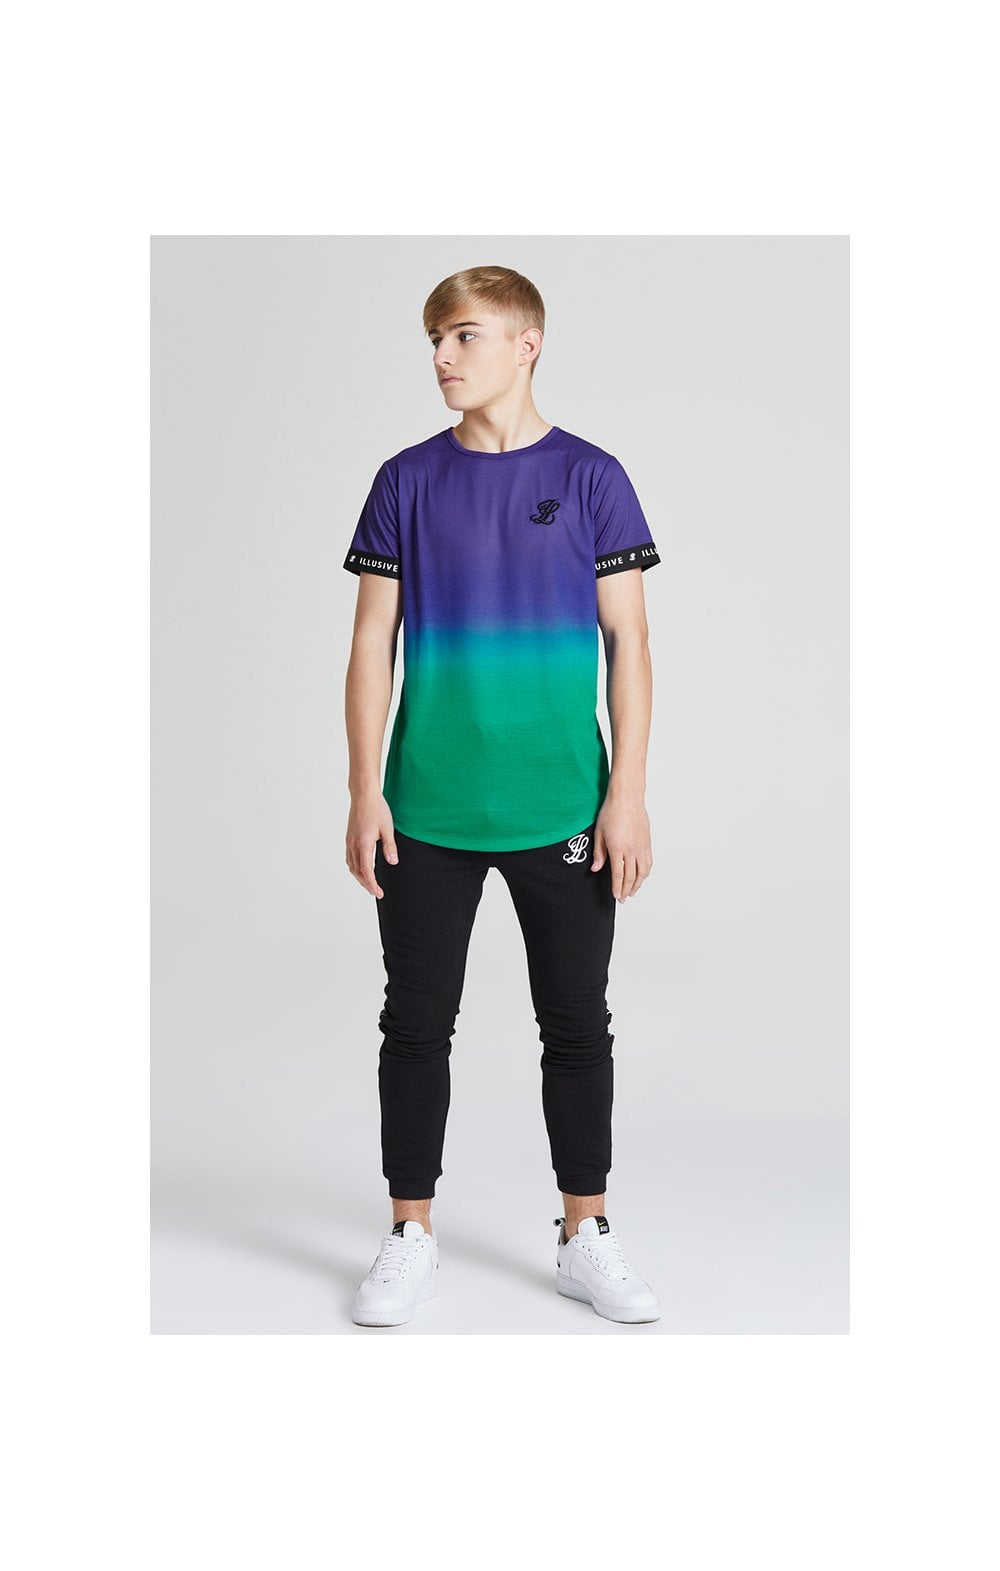 Load image into Gallery viewer, Illusive London Fade Tech Tee - Purple & Teal Green (1)